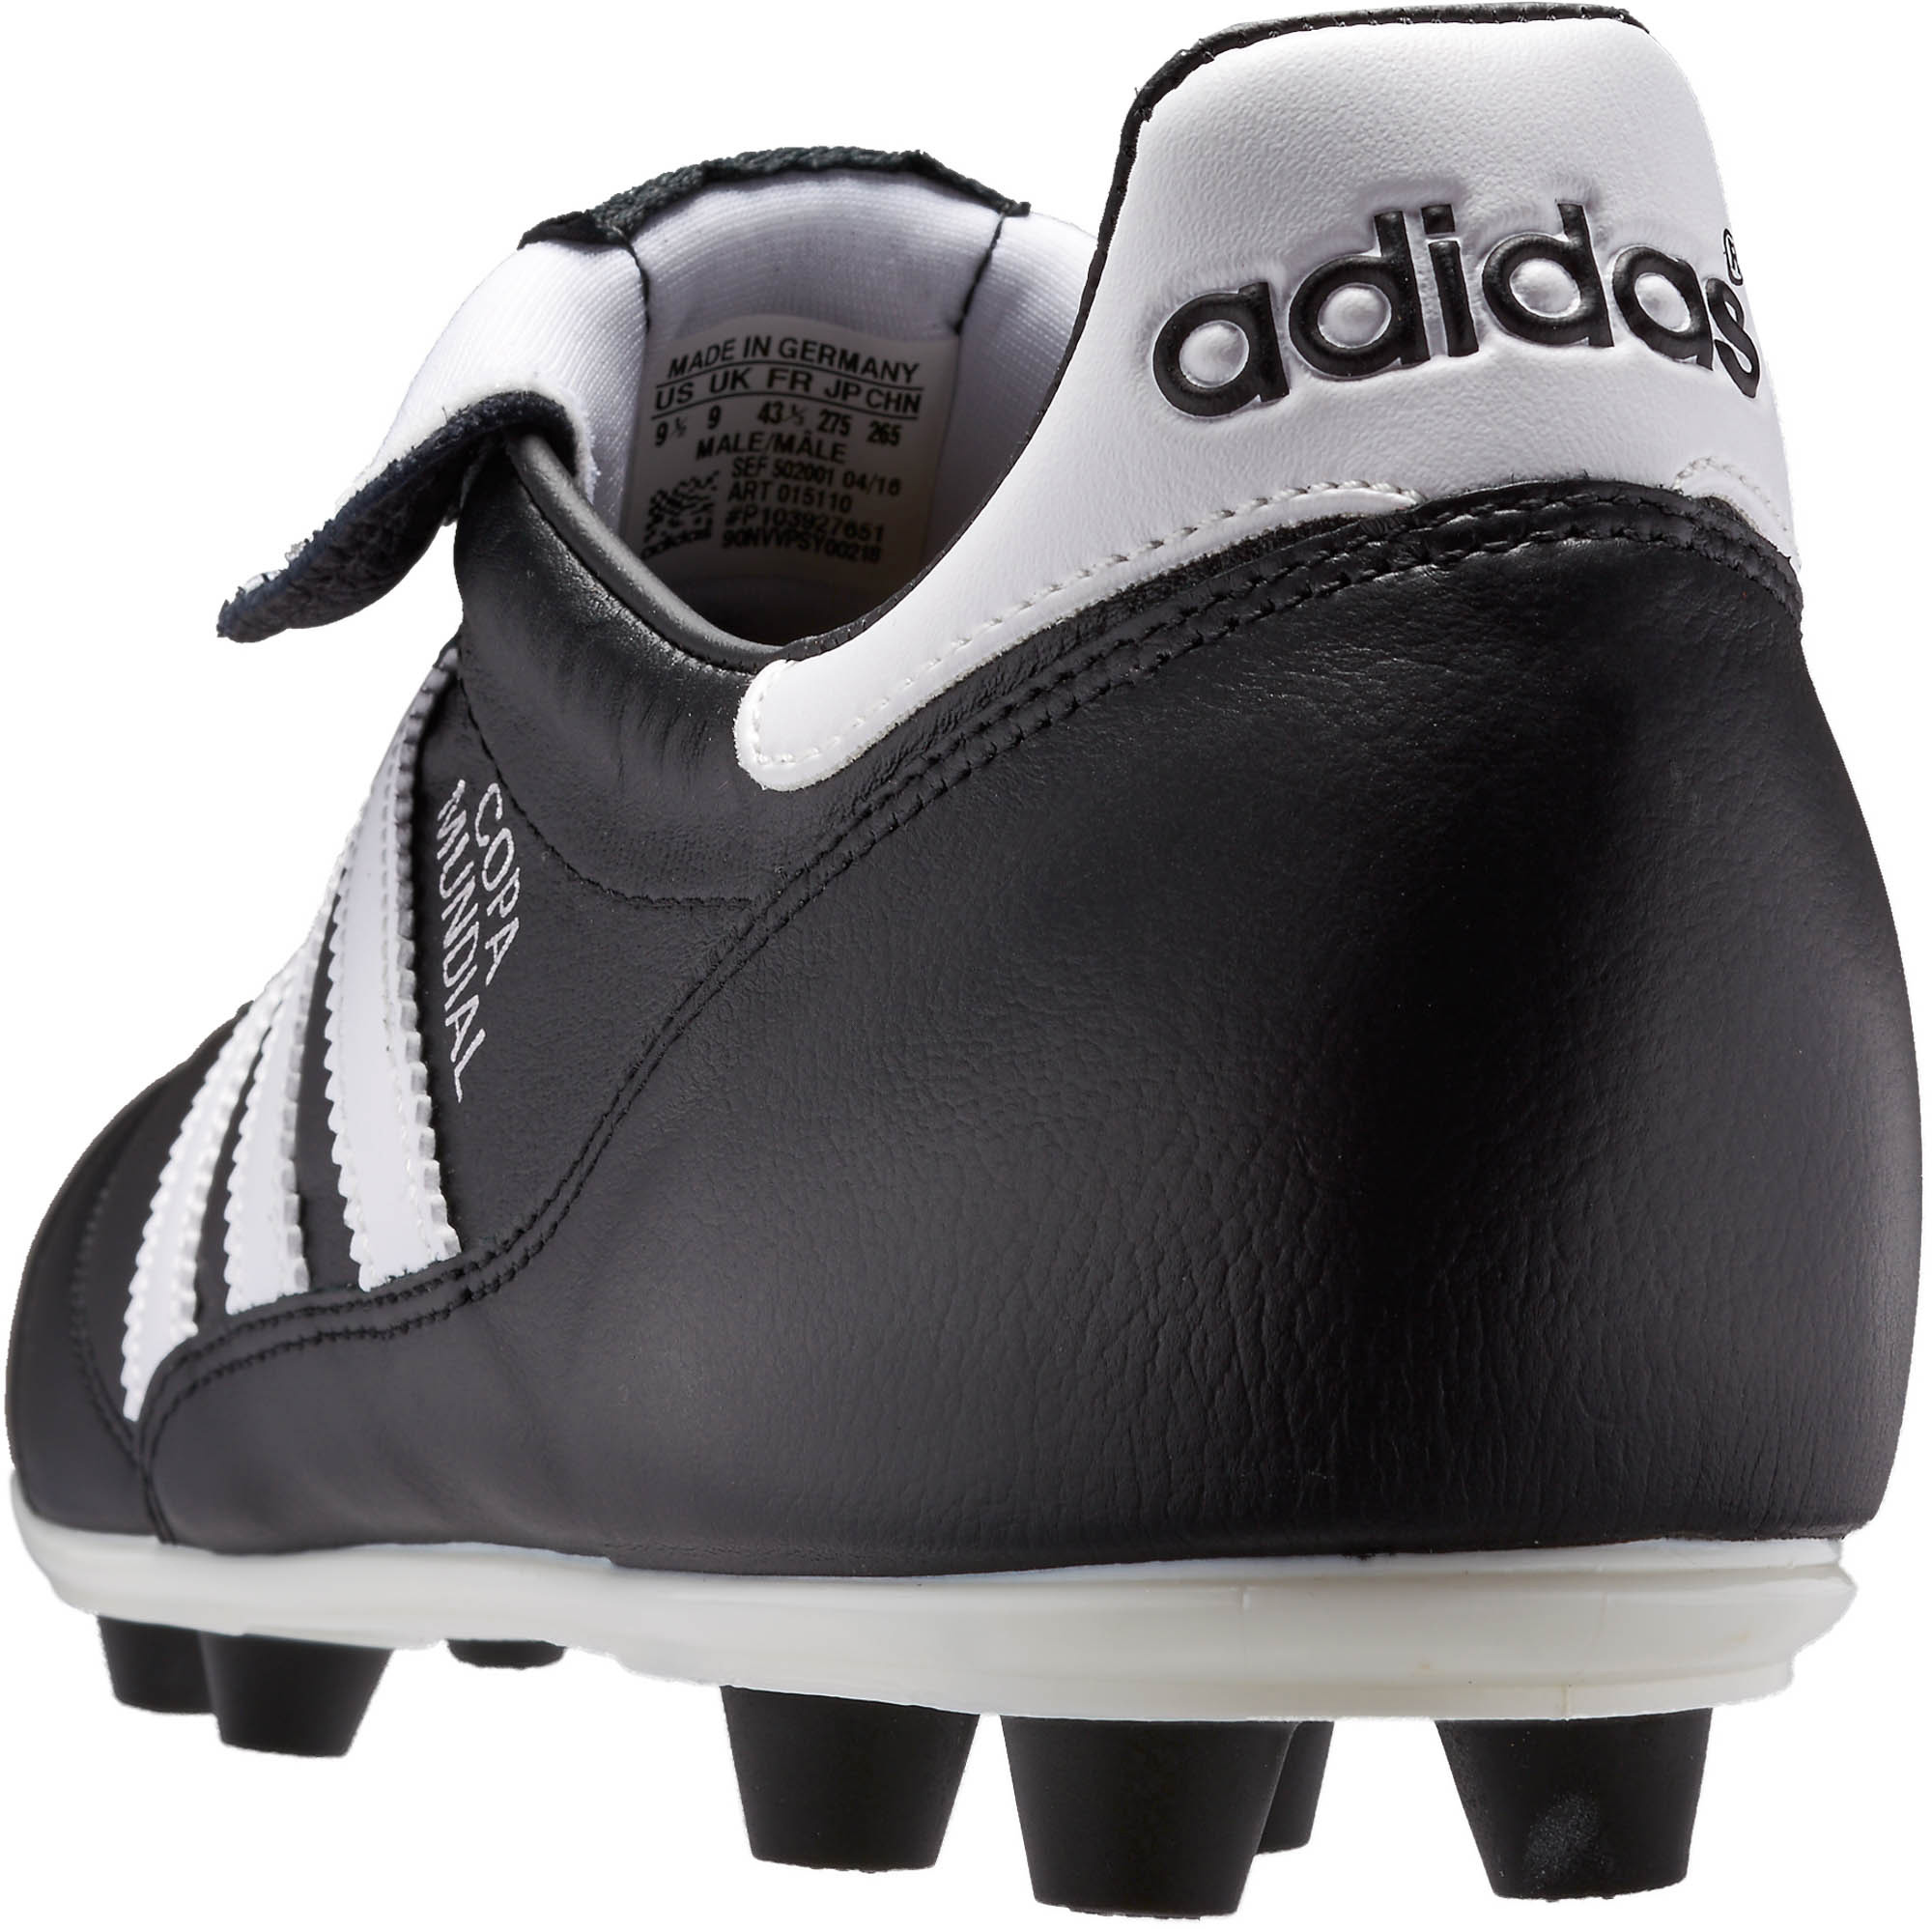 1eded293b adidas Copa Mundial - Black with White - Soccer Master